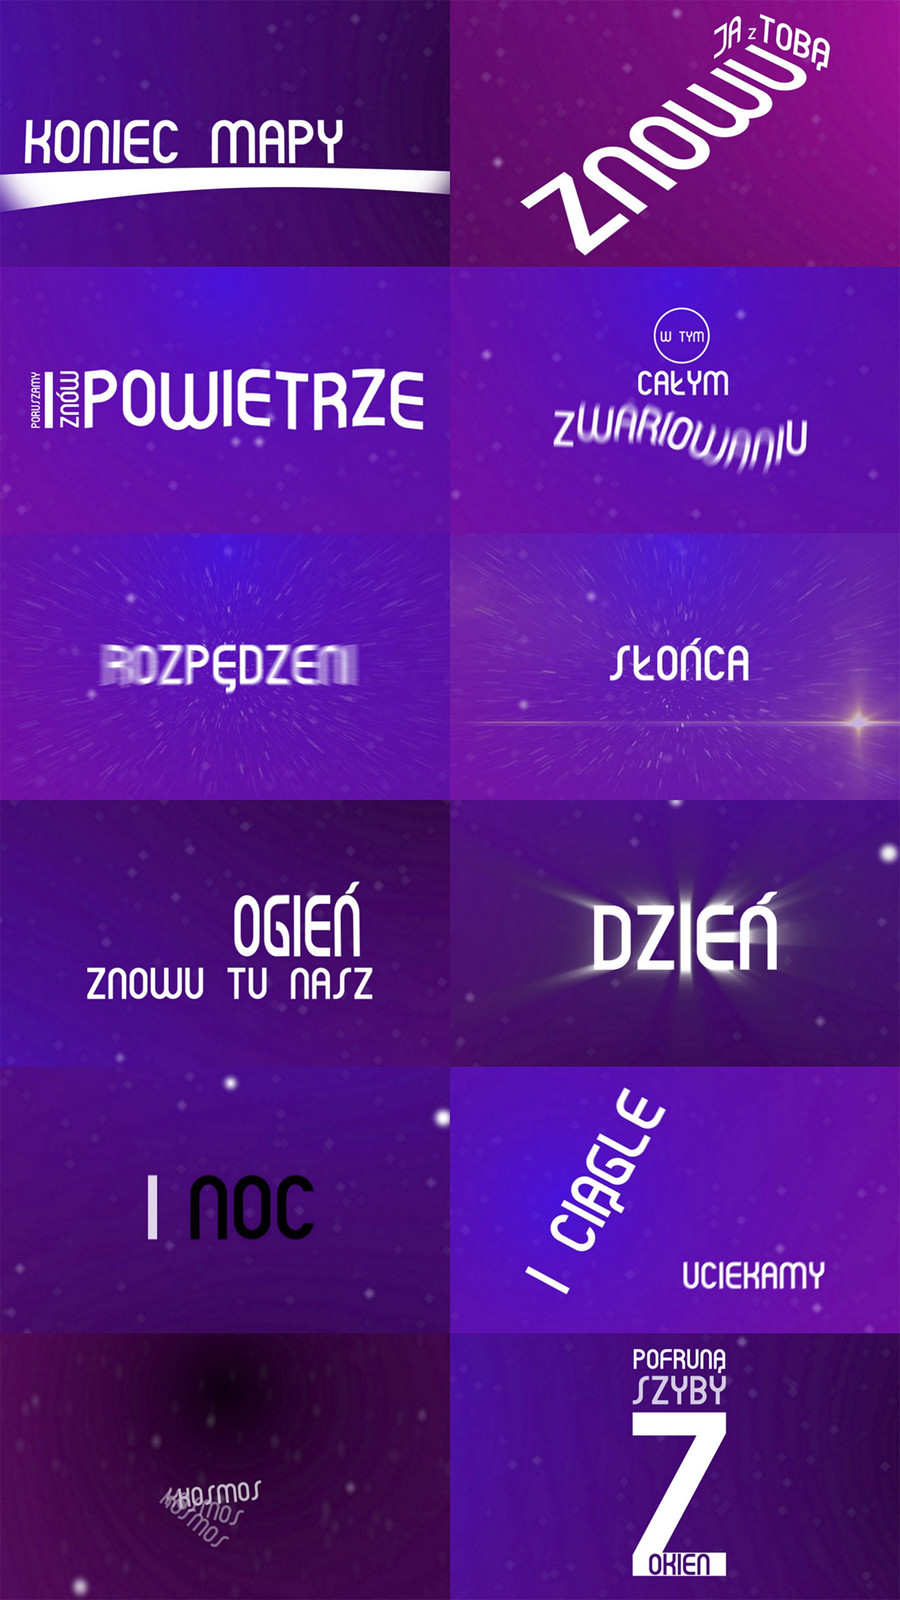 Some example frames from the lyrics video.